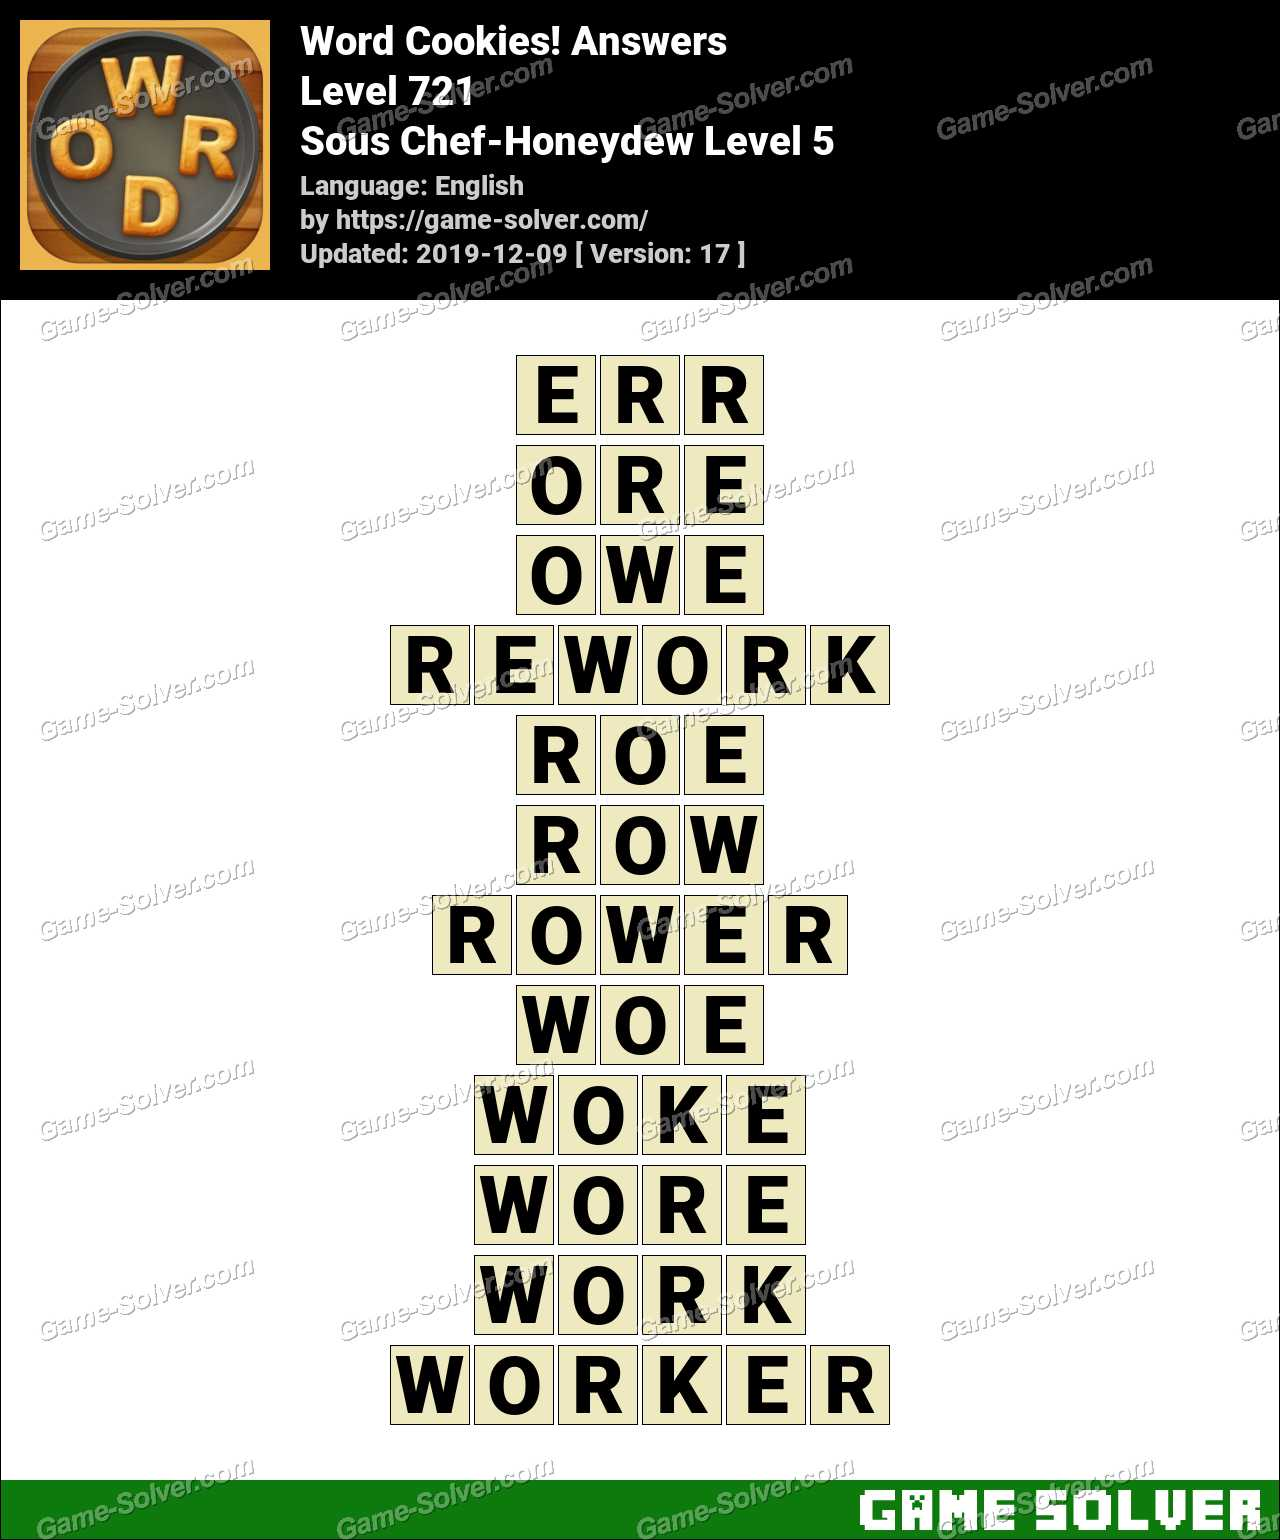 Word Cookies Sous Chef-Honeydew Level 5 Answers